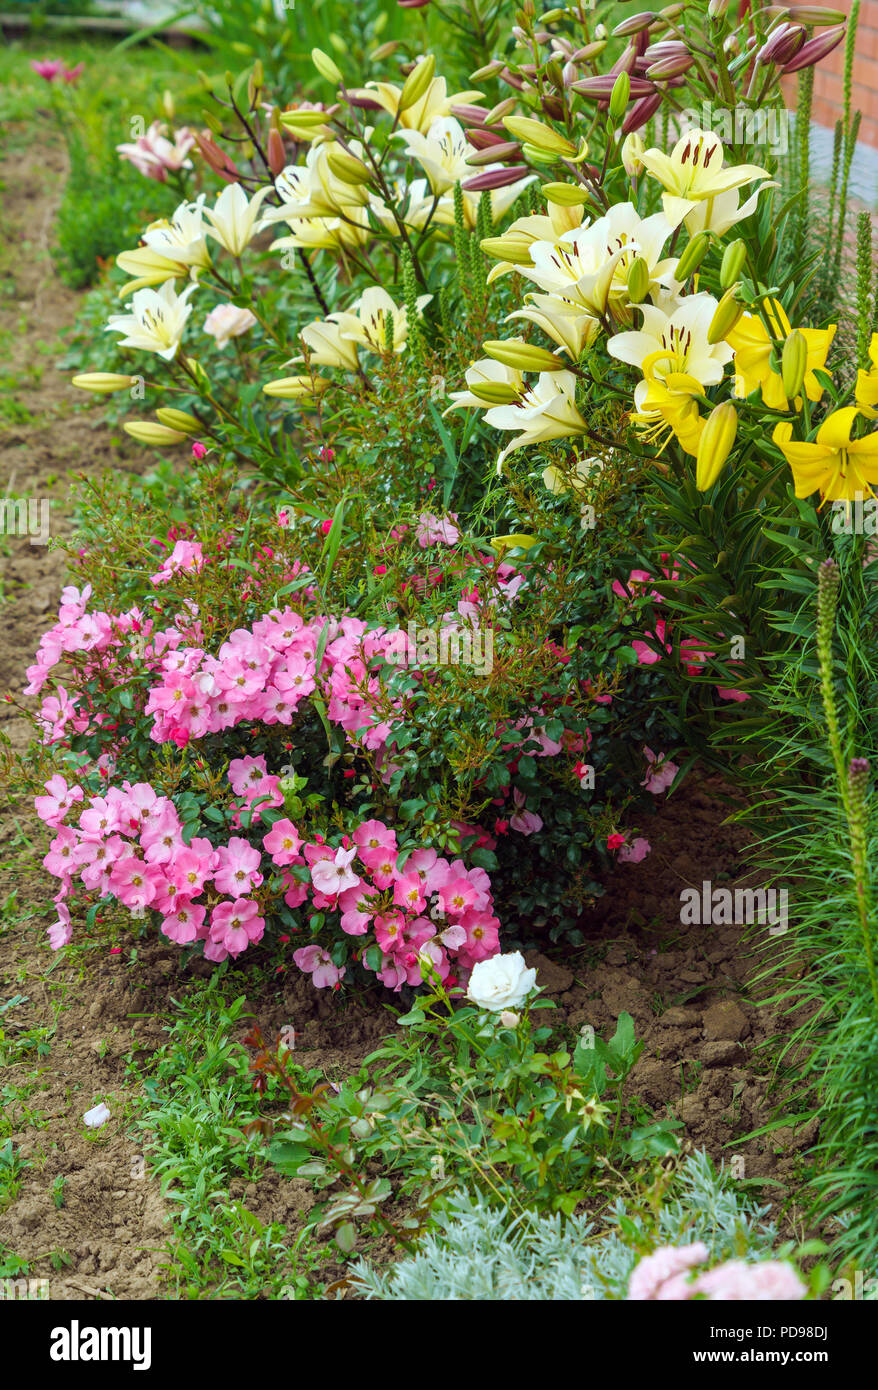 A Rose Bush Rose With Small Numerous Flowers And Large Yellow Lilies